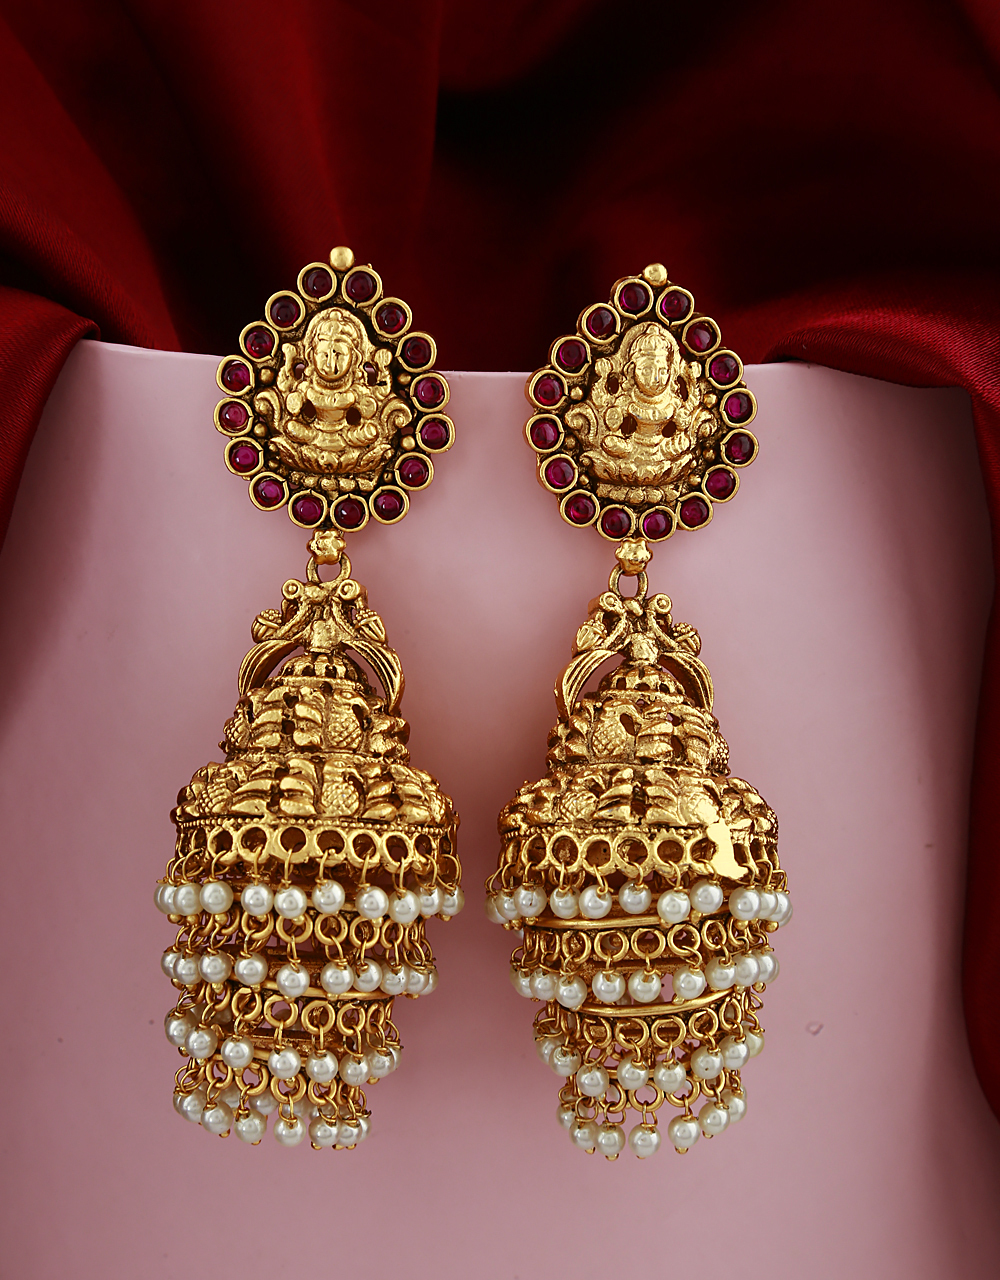 Golden Finish Temple Design Studded With Lots Of Pearl Beads Droplet Earrings Pair